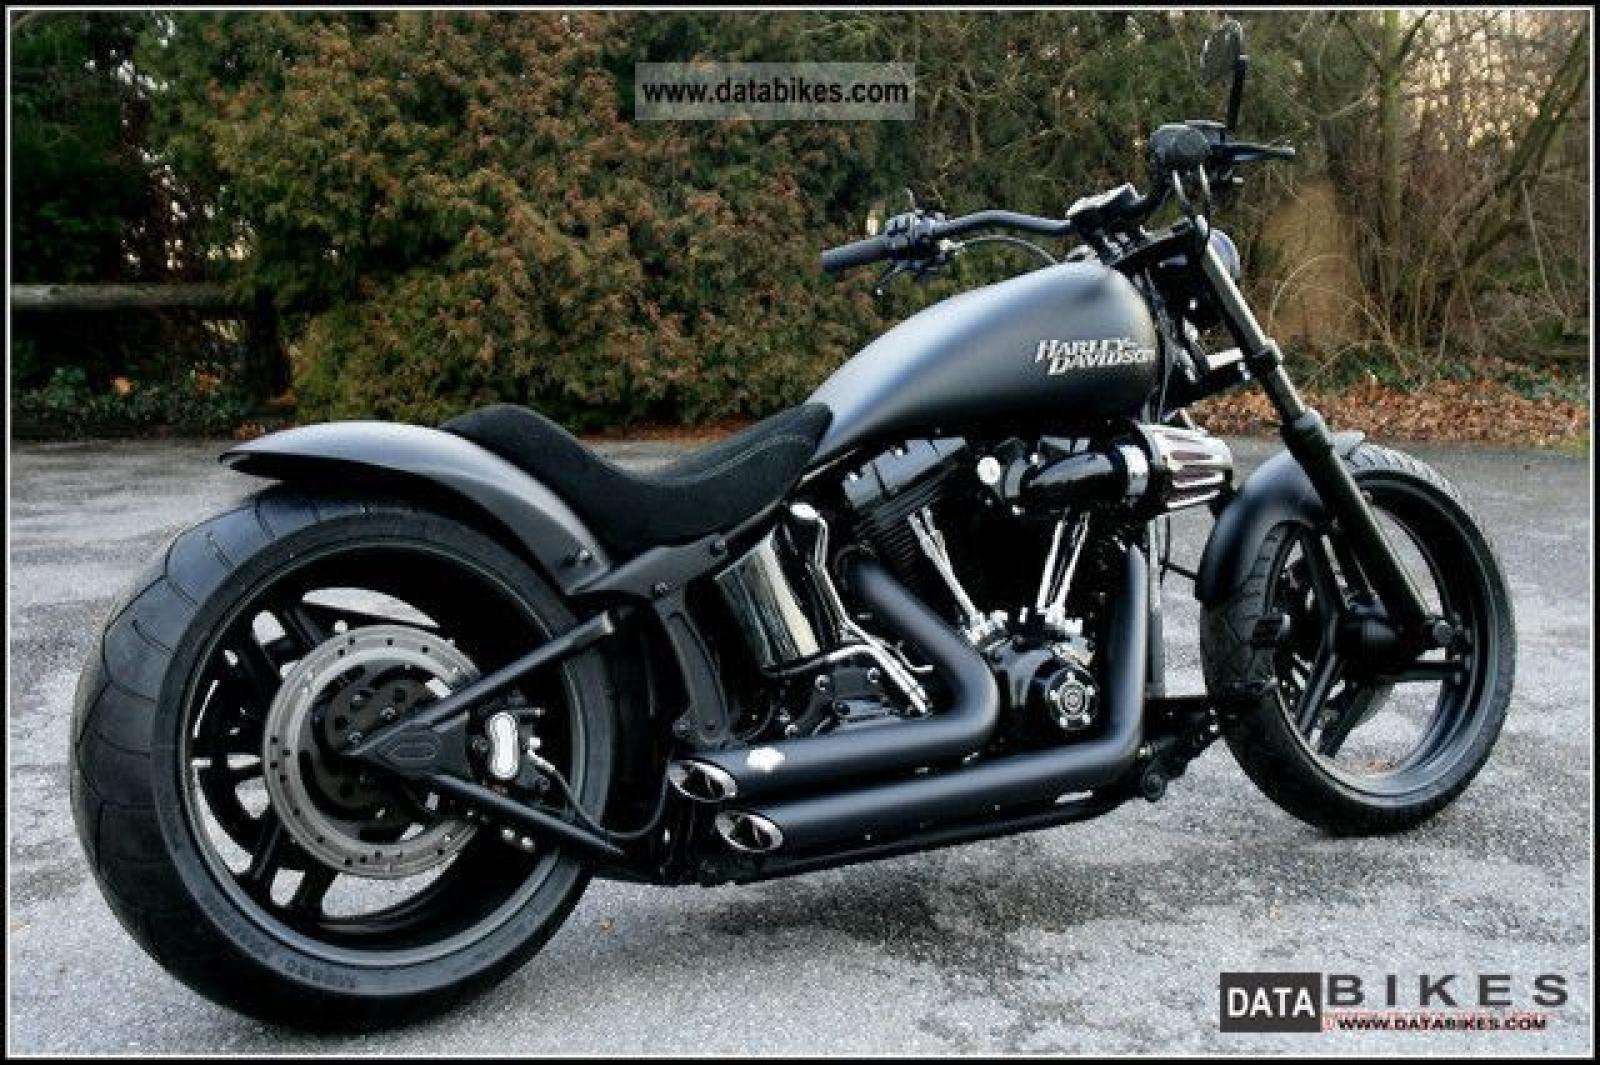 1991 Harley Davidson Softail Wiring Diagram Electrical Diagrams Springer 1983 Fxst 1340 Moto Zombdrive Com Schematics And